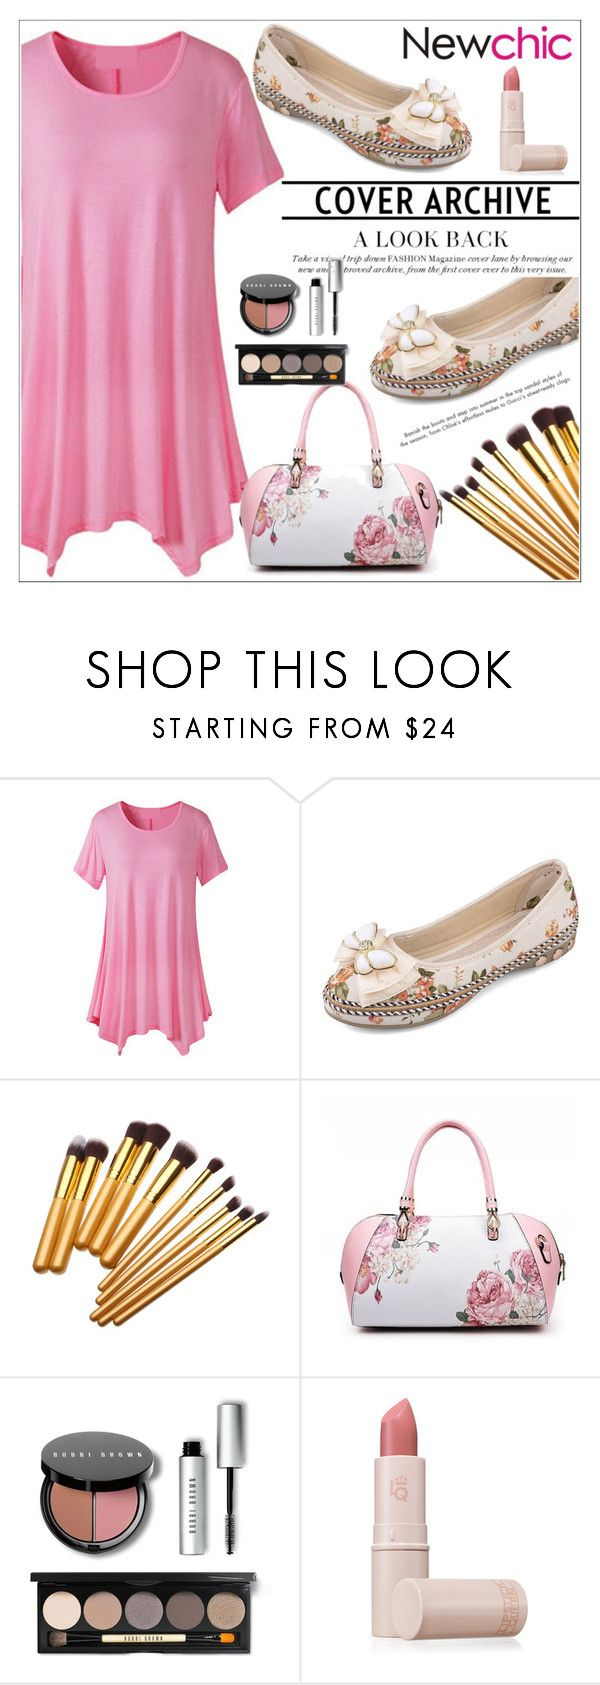 """""""Newchic"""" by adelisa56 ❤ liked on Polyvore featuring Bobbi Brown Cosmetics and Lipstick Queen"""